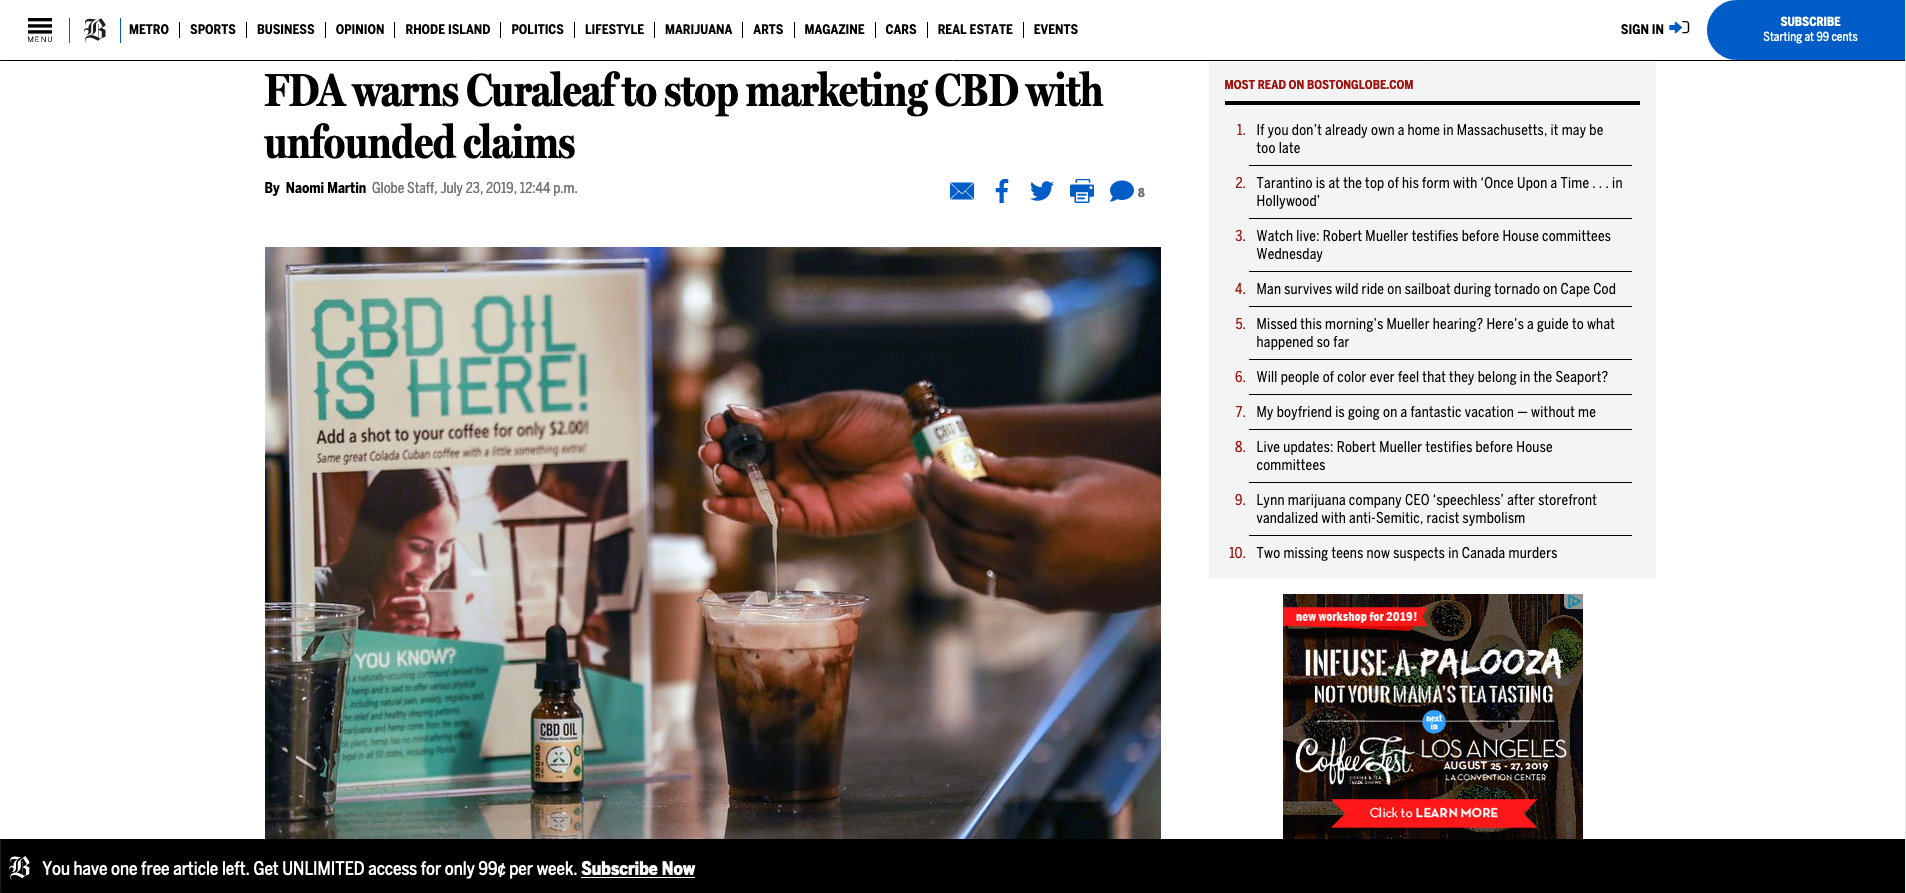 FDA warns Curaleaf to stop marketing CBD with unfounded